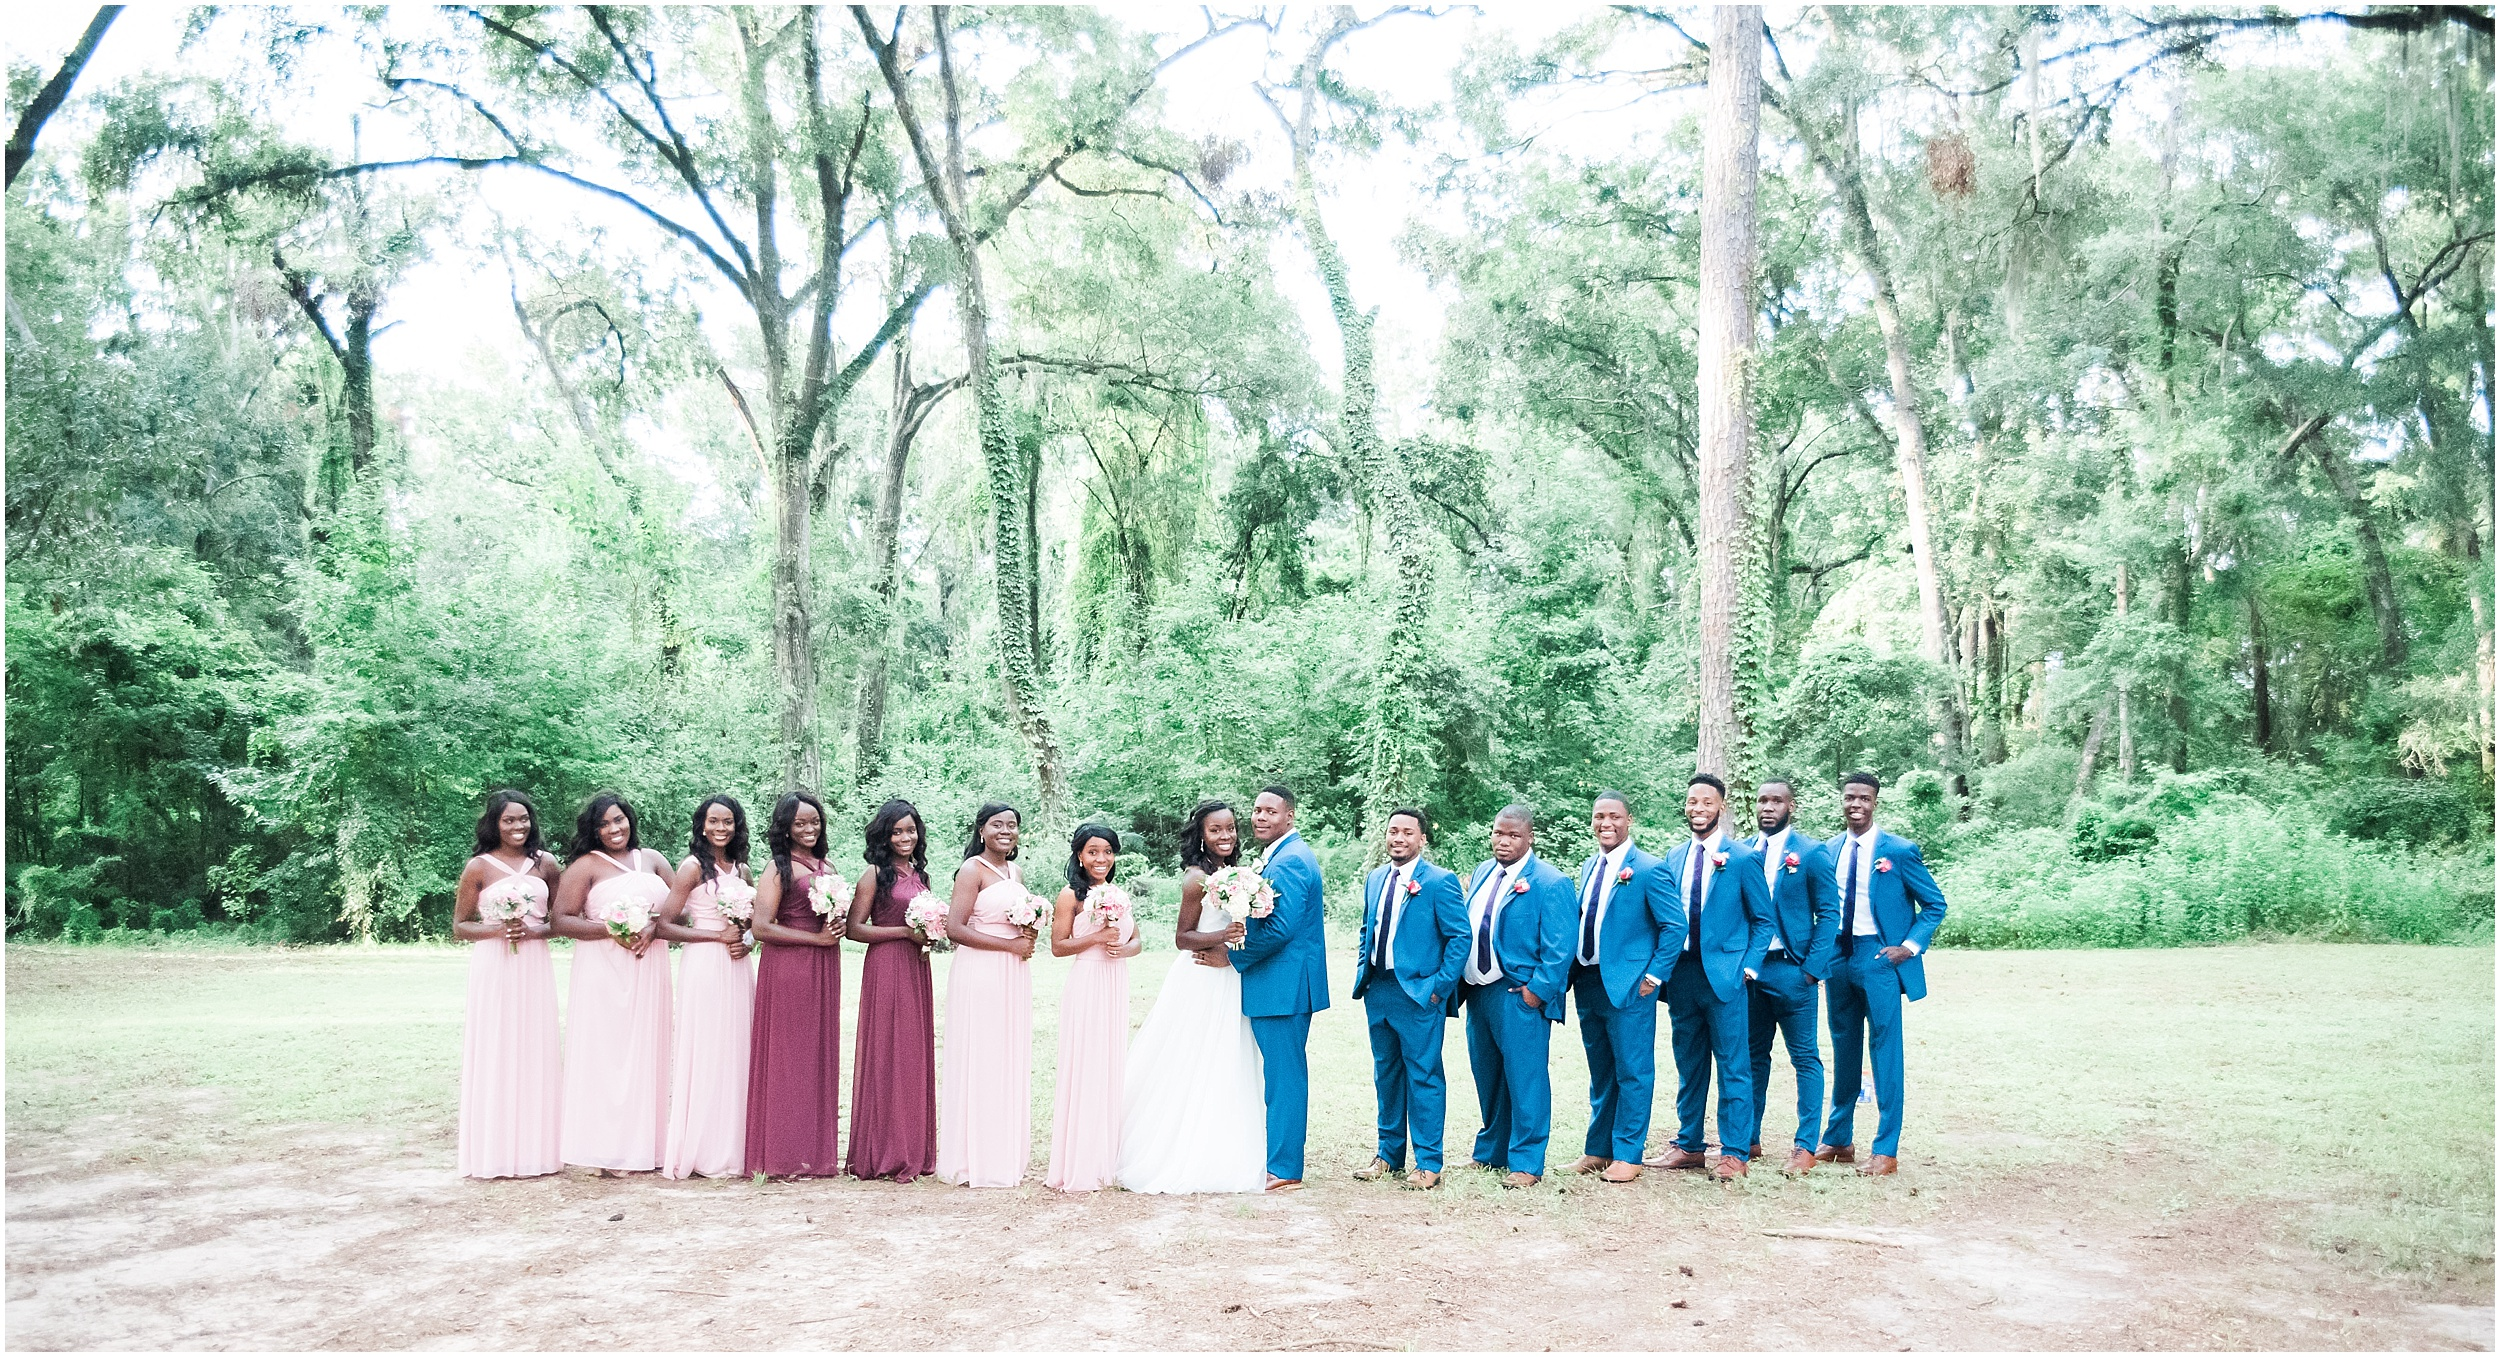 Tallahassee Florida Wedding Photographer, Therline & Jerry Wedding at Restoration Place, Tallahassee Florida_0027.jpg